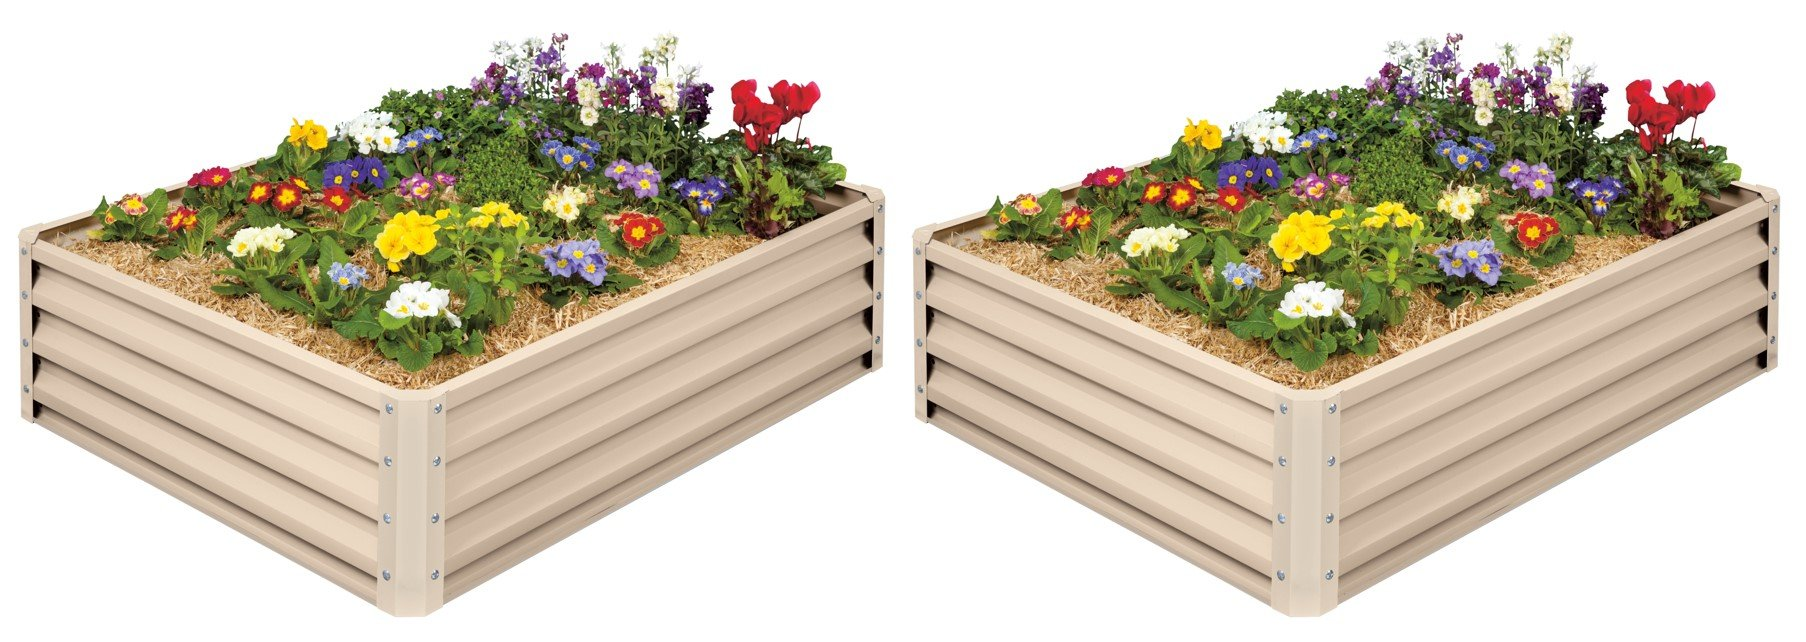 Metal Raised Garden Bed Kit - Elevated Planter Box For Growing Herbs, Vegetables, Flowers, and Succulents (2) by Mr. Stacky